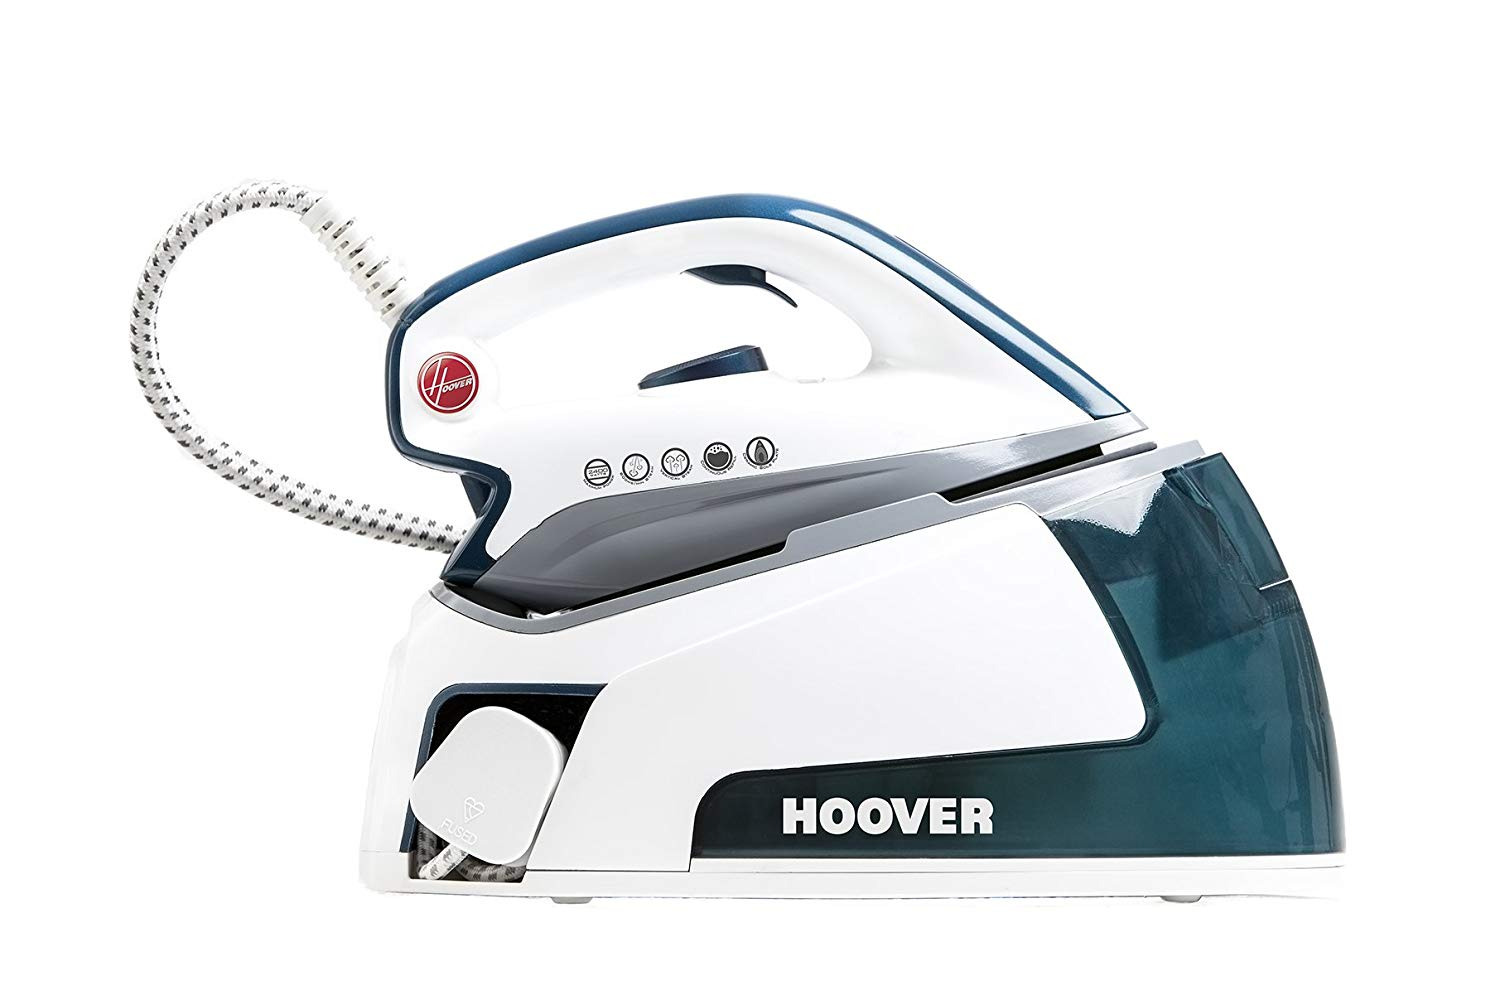 Hoover Ironglide Pumped Steam Generator